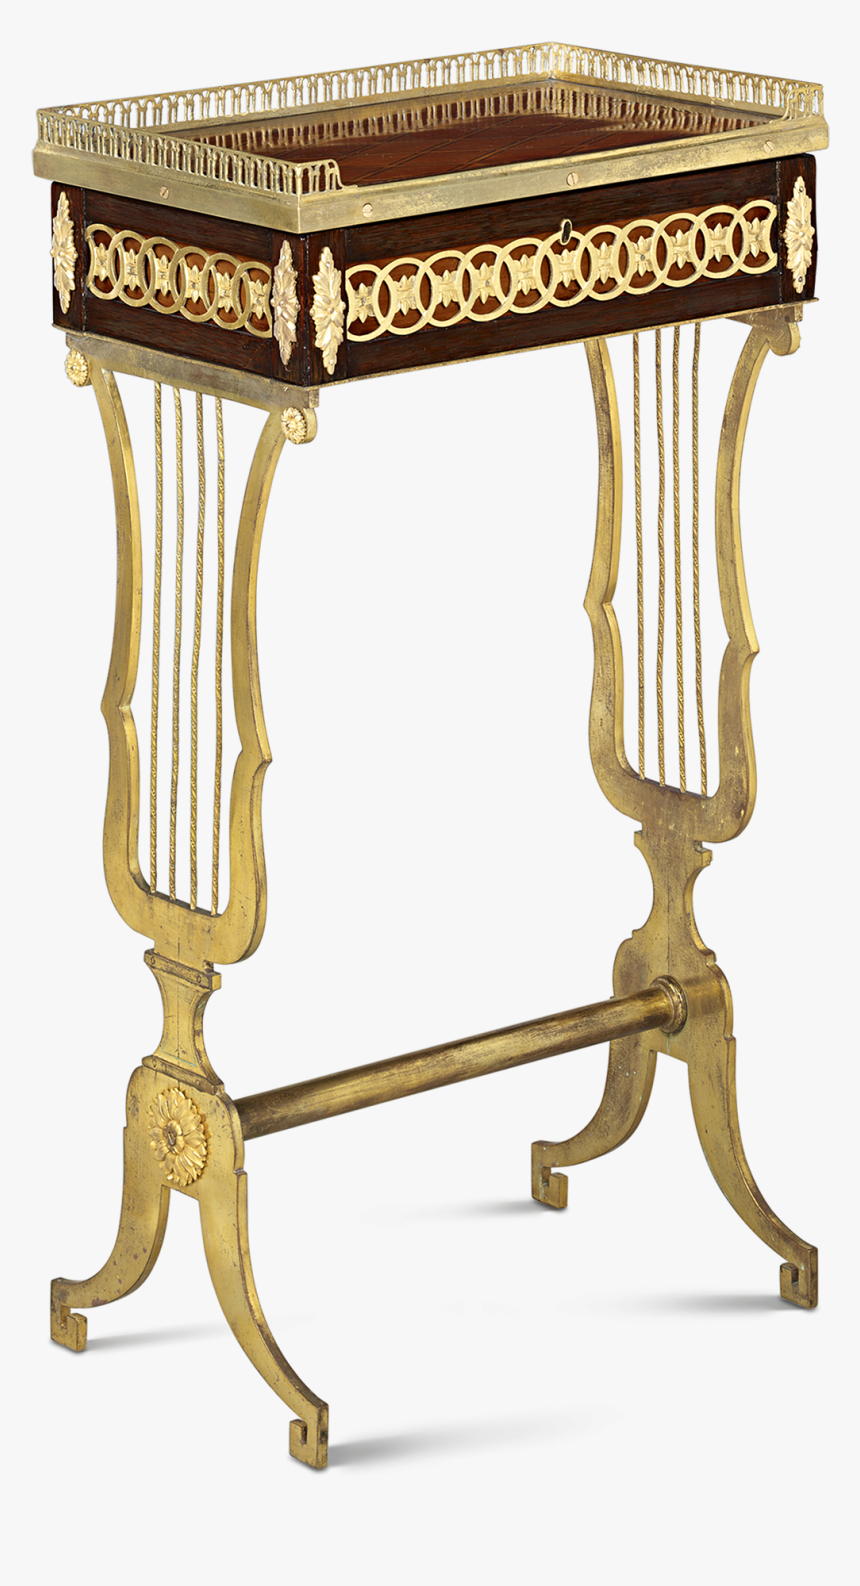 French Empire Jewelry Table - French Empire Furniture, HD Png Download, Free Download